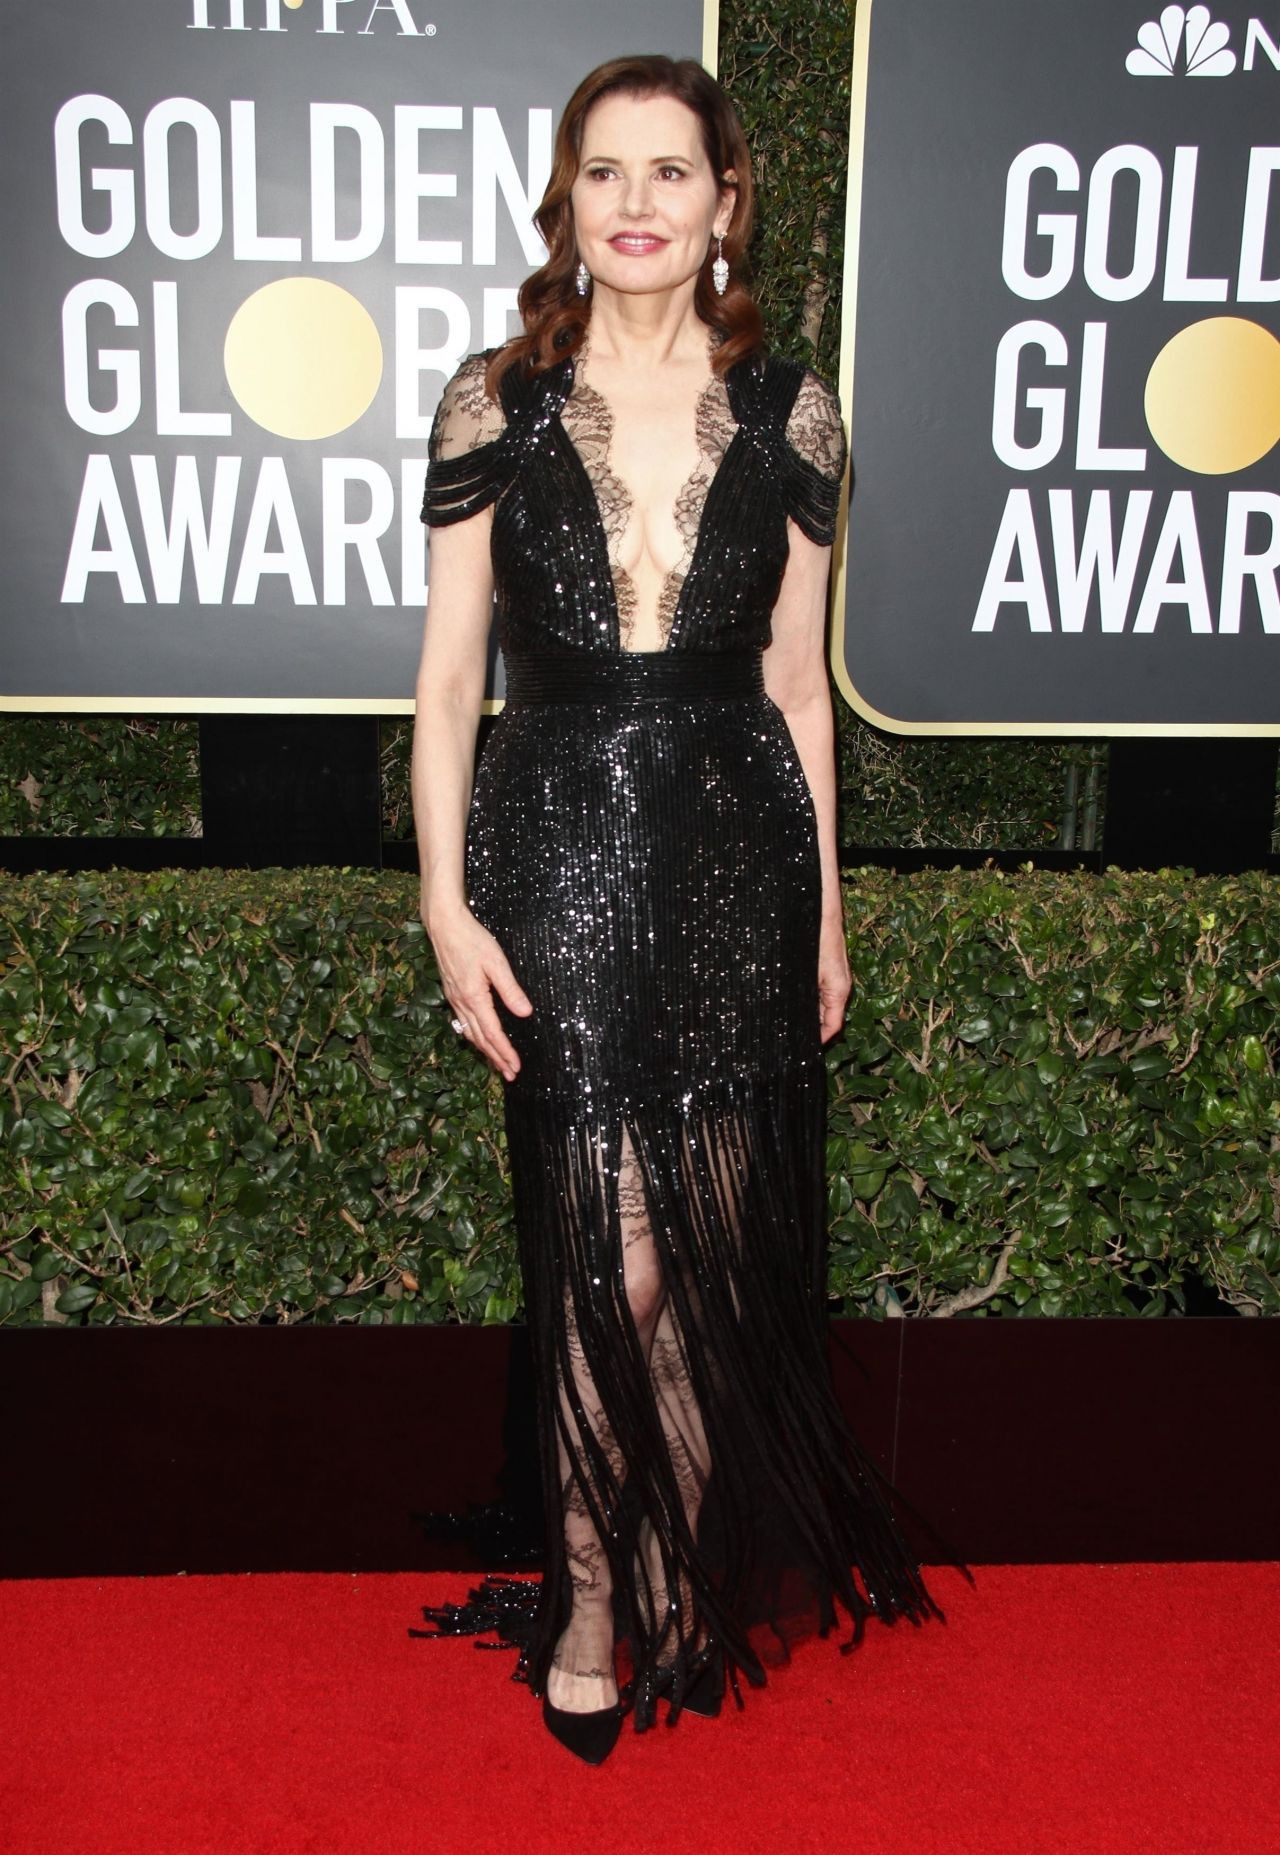 Geena Davis Golden Globe Awards 2018